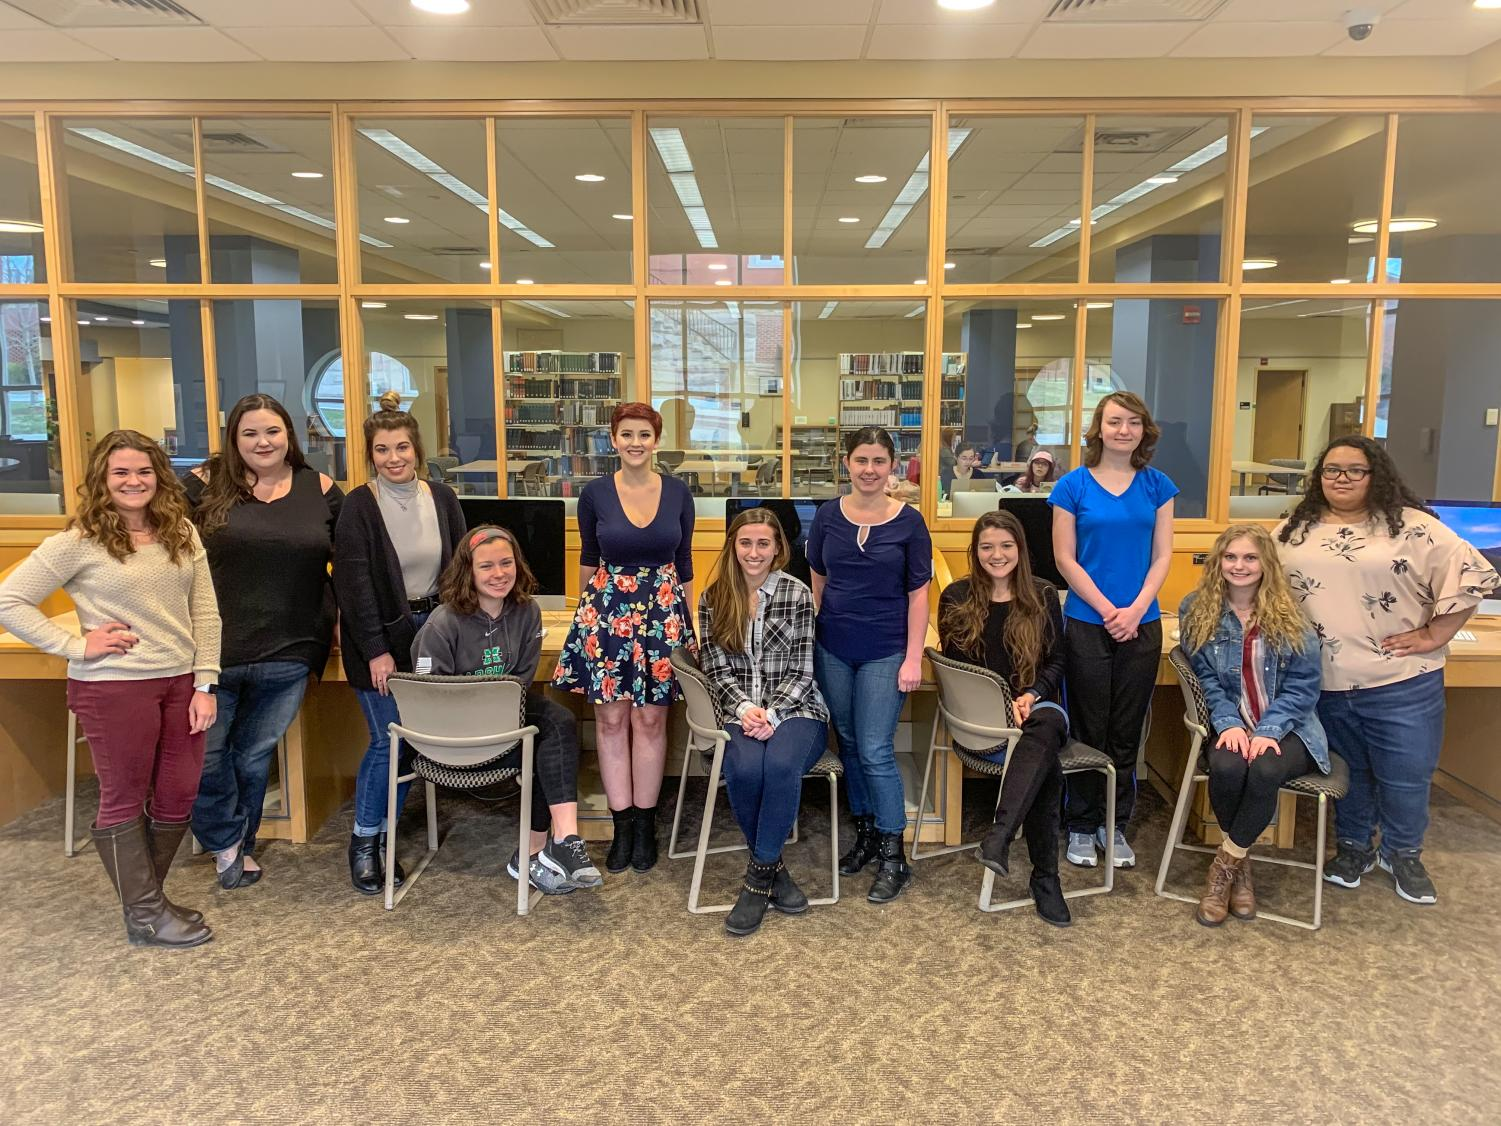 Members of the Women in Cyber club hope to empower women interested in learning about technology-based fields.